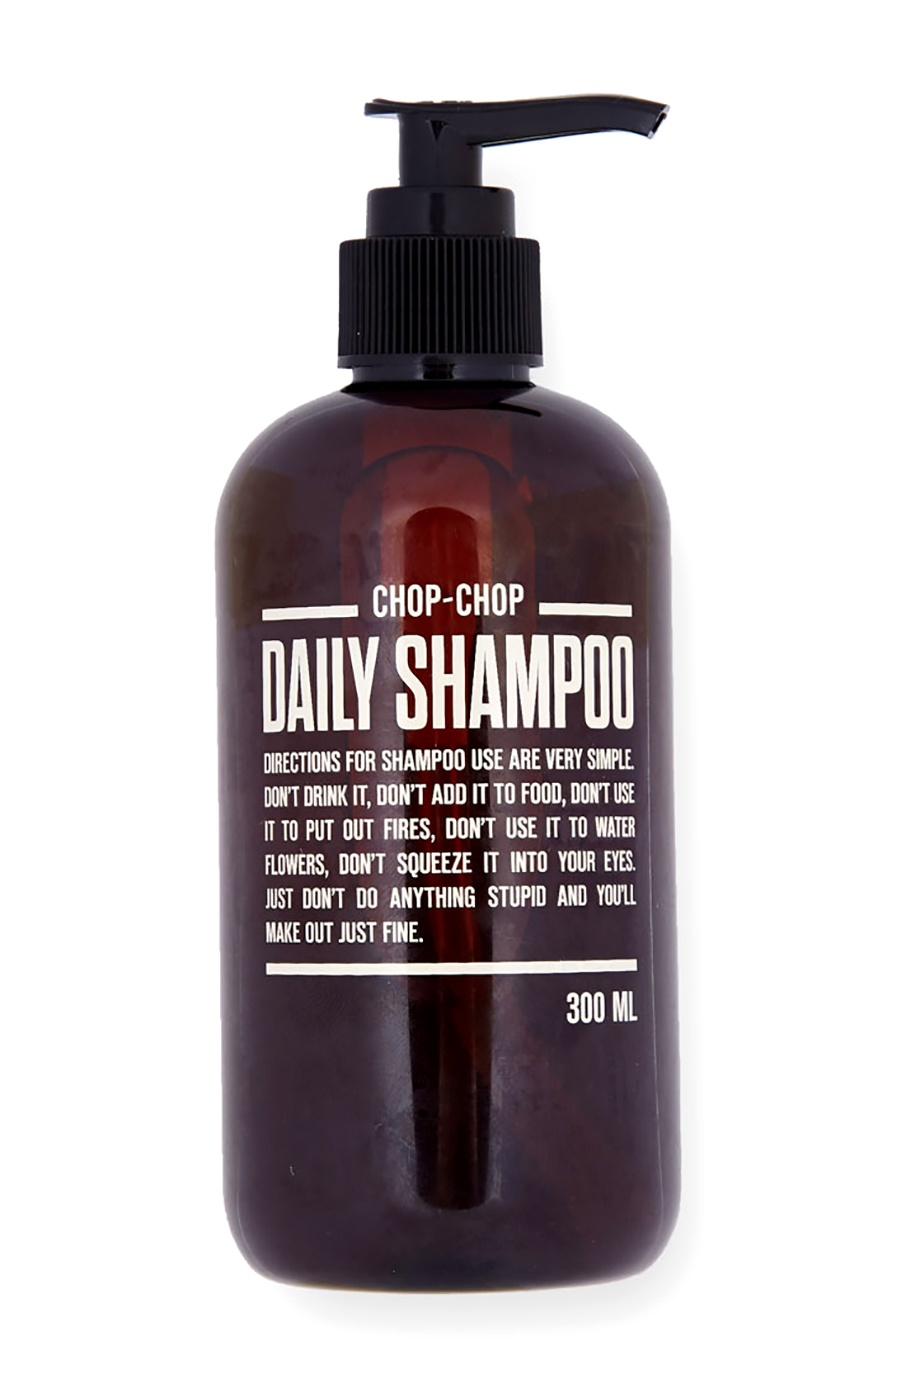 Daily Shampoo, 300 ml Chop-Chop (фото)